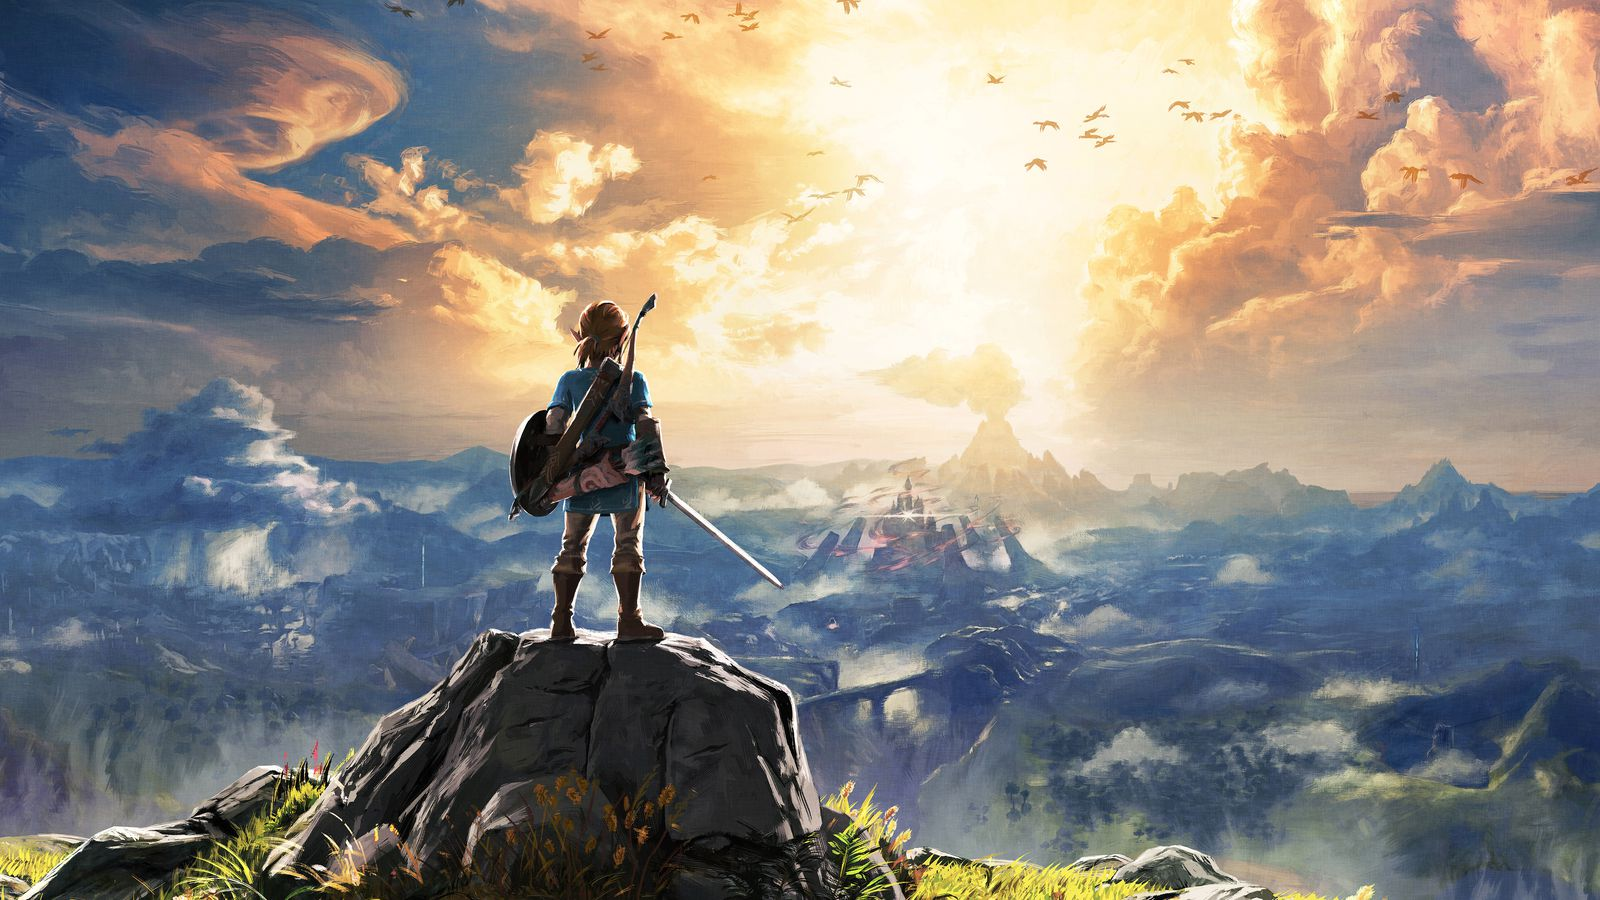 Breath Of The Wild Screensaver: Zelda: Breath Of The Wild Is Already One Of The Best